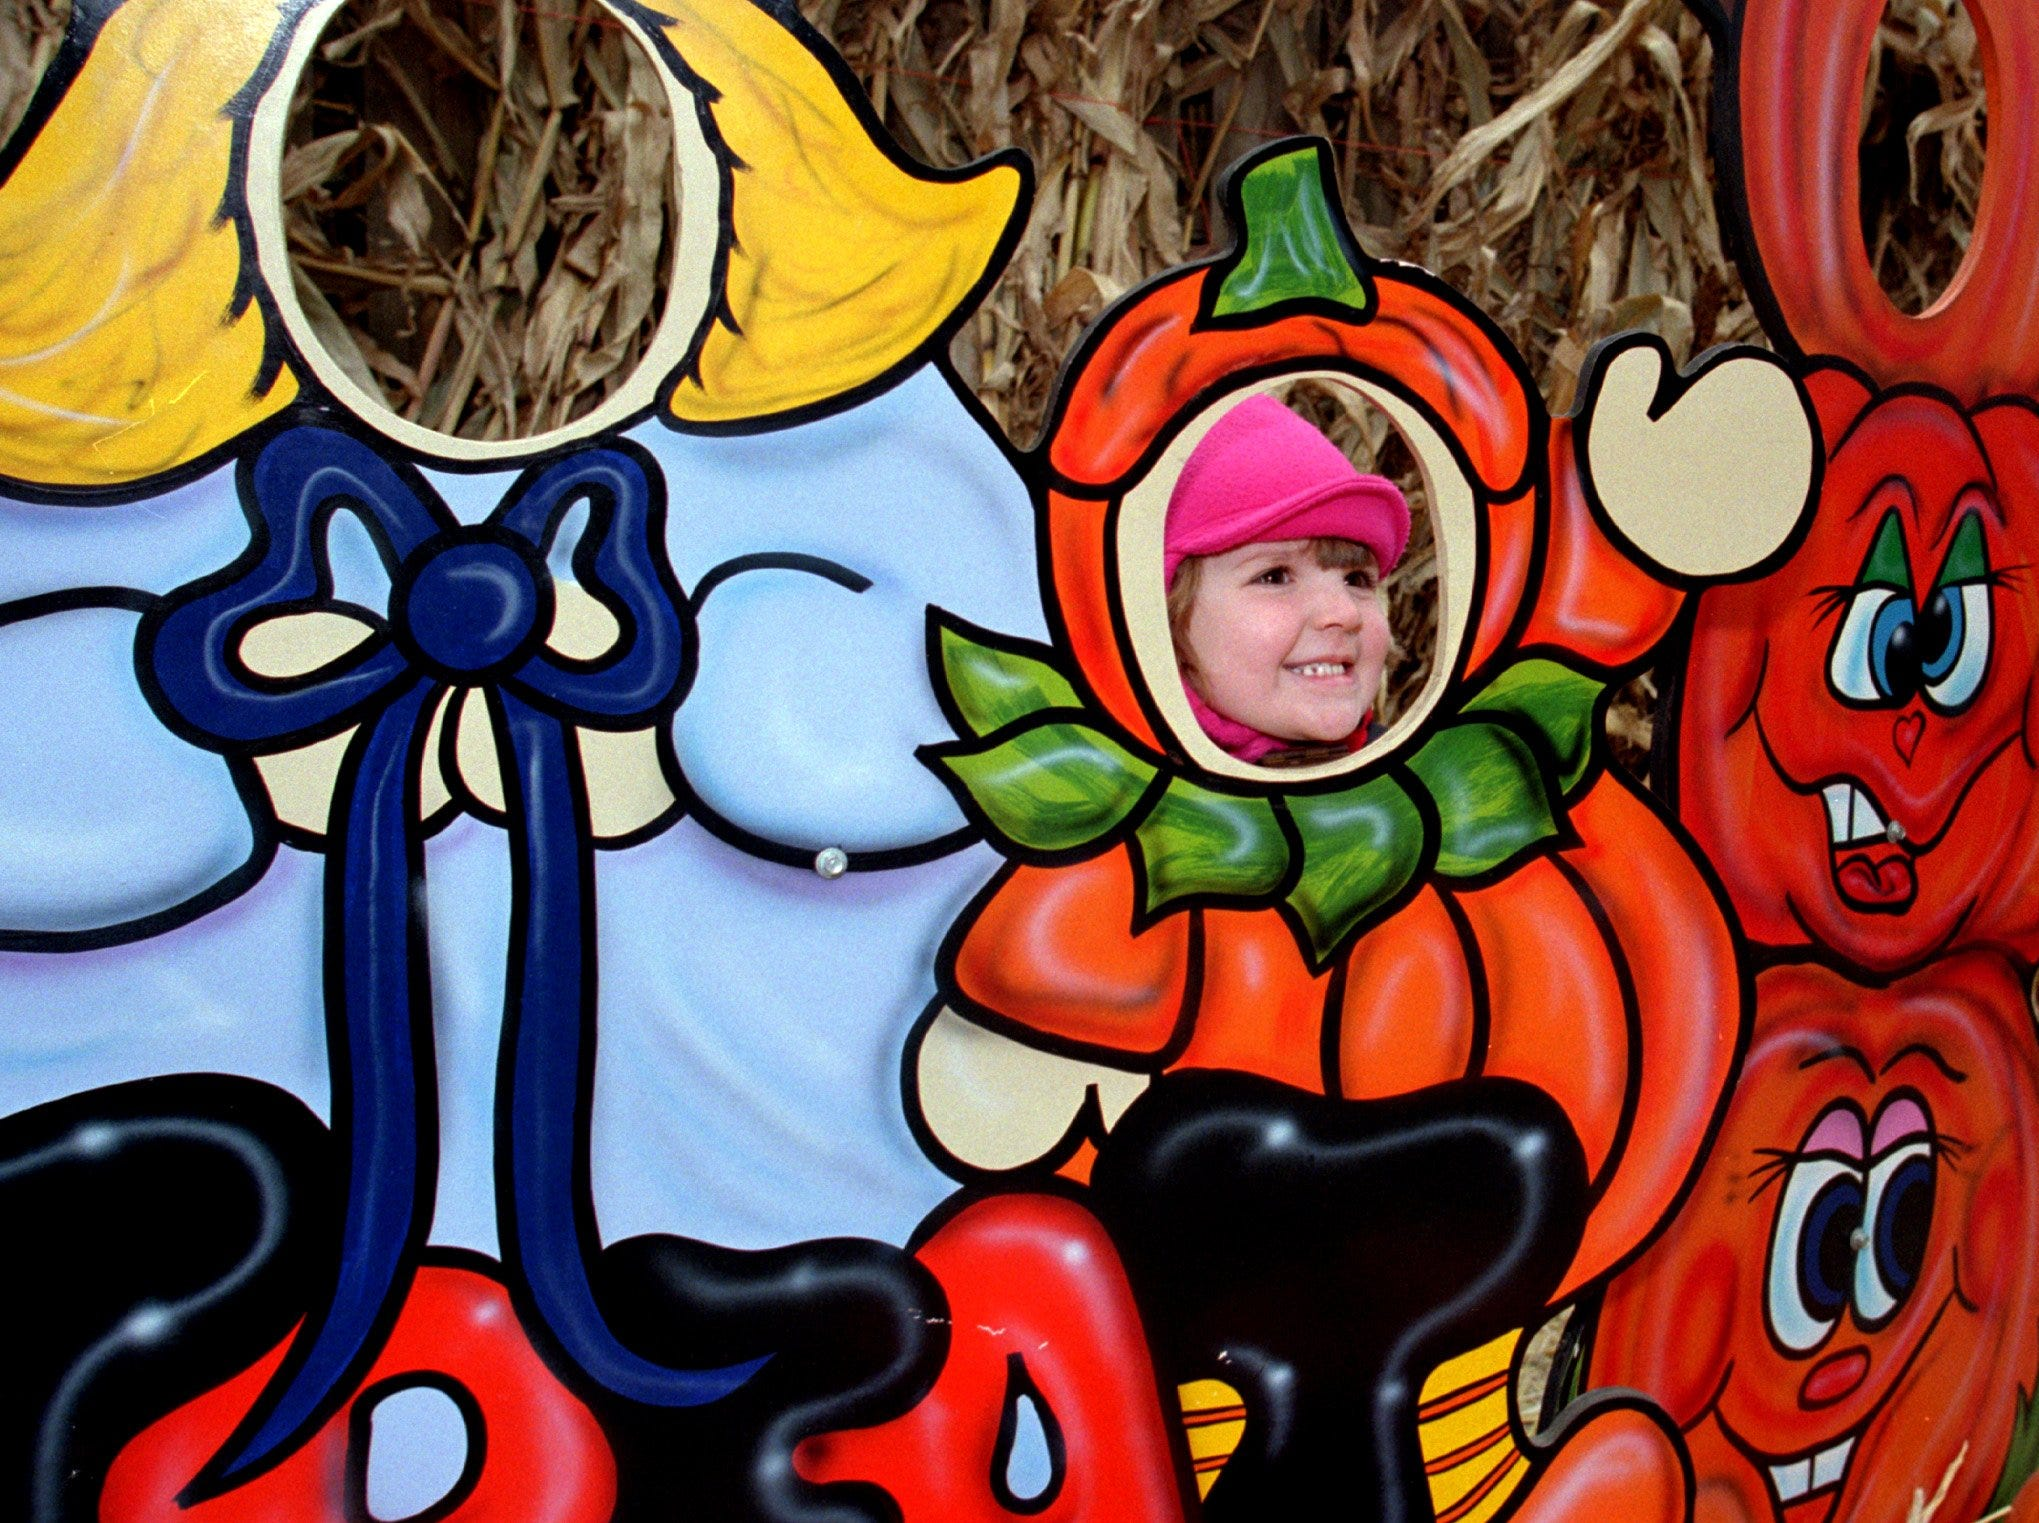 1999: Morgan Flanders, 3, of Schuylerville, pokes her face into a pumpkin cutout at Bradley Farms on chilly Sunday afternoon. She visited Bradley Farms' pumpkin patch and Halloween scenes on a trip to visit her aunt, Alyce Adair of Elmira.